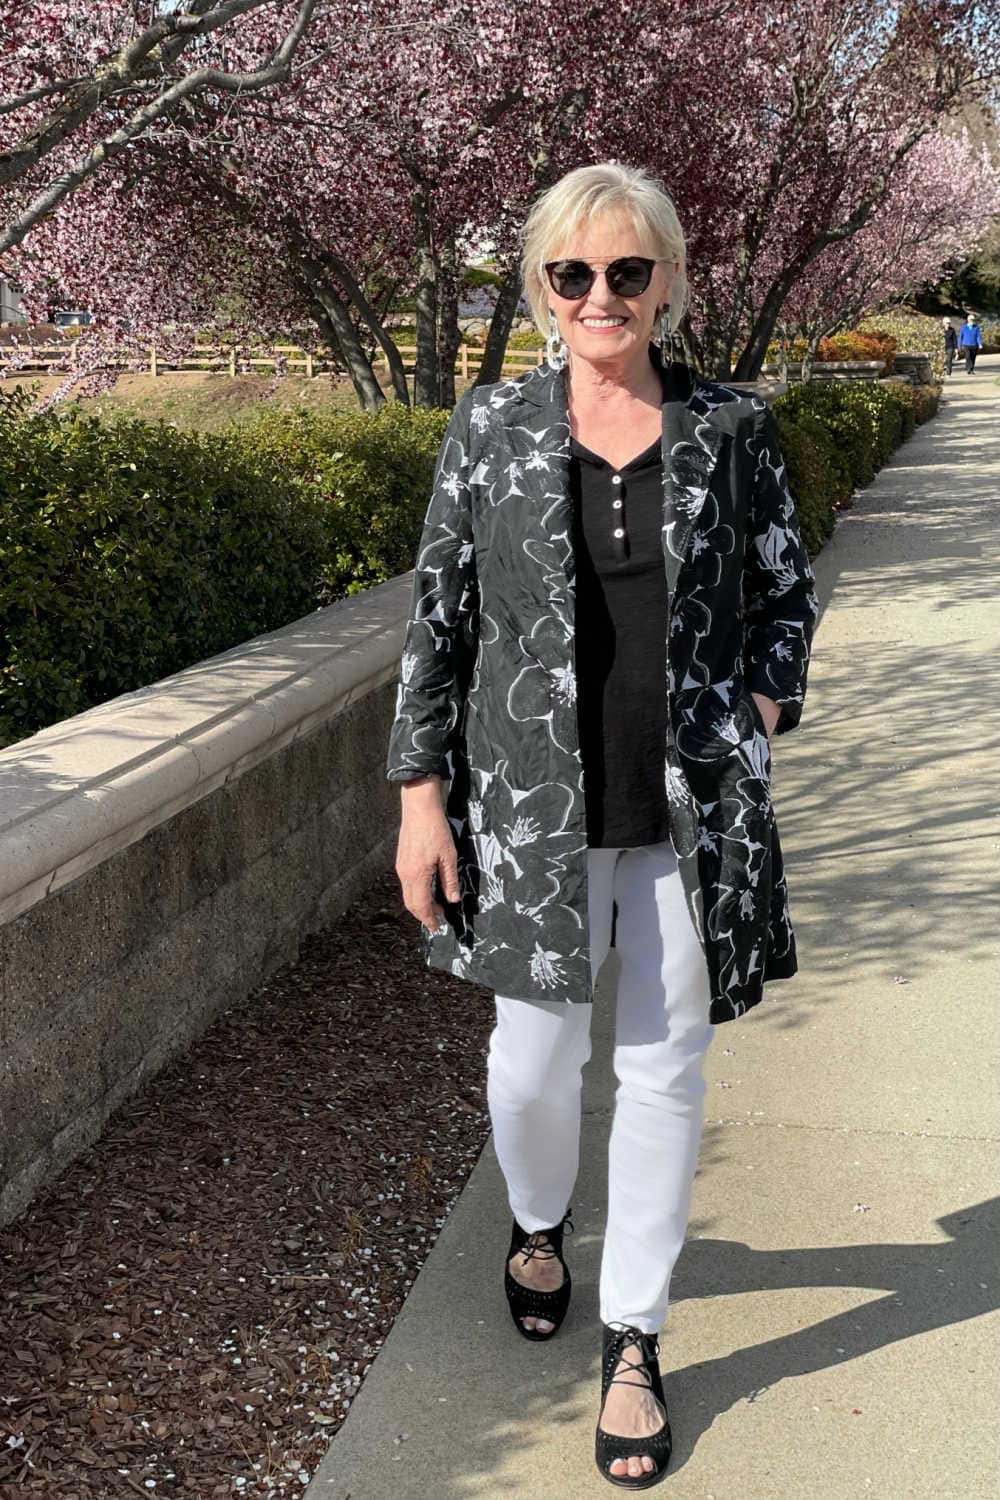 woman walking in white jeans and floral jacket